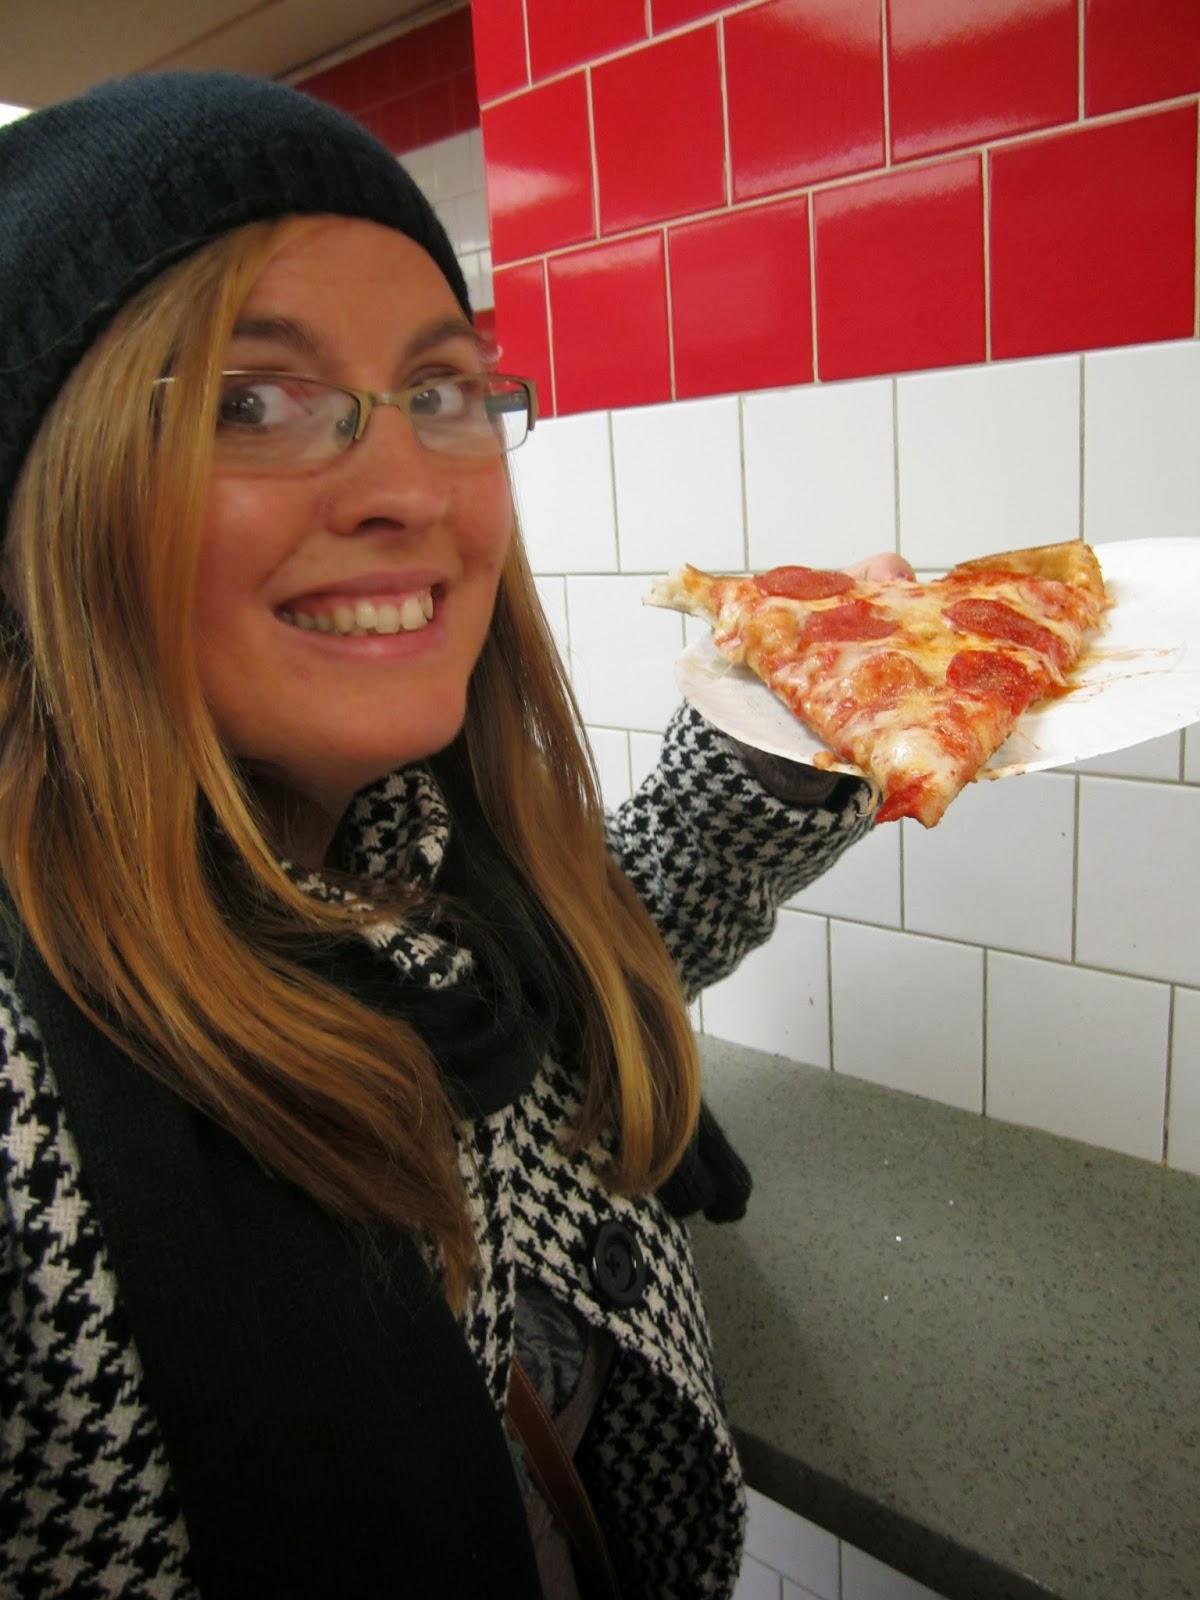 new york city, woman smiling, pizza